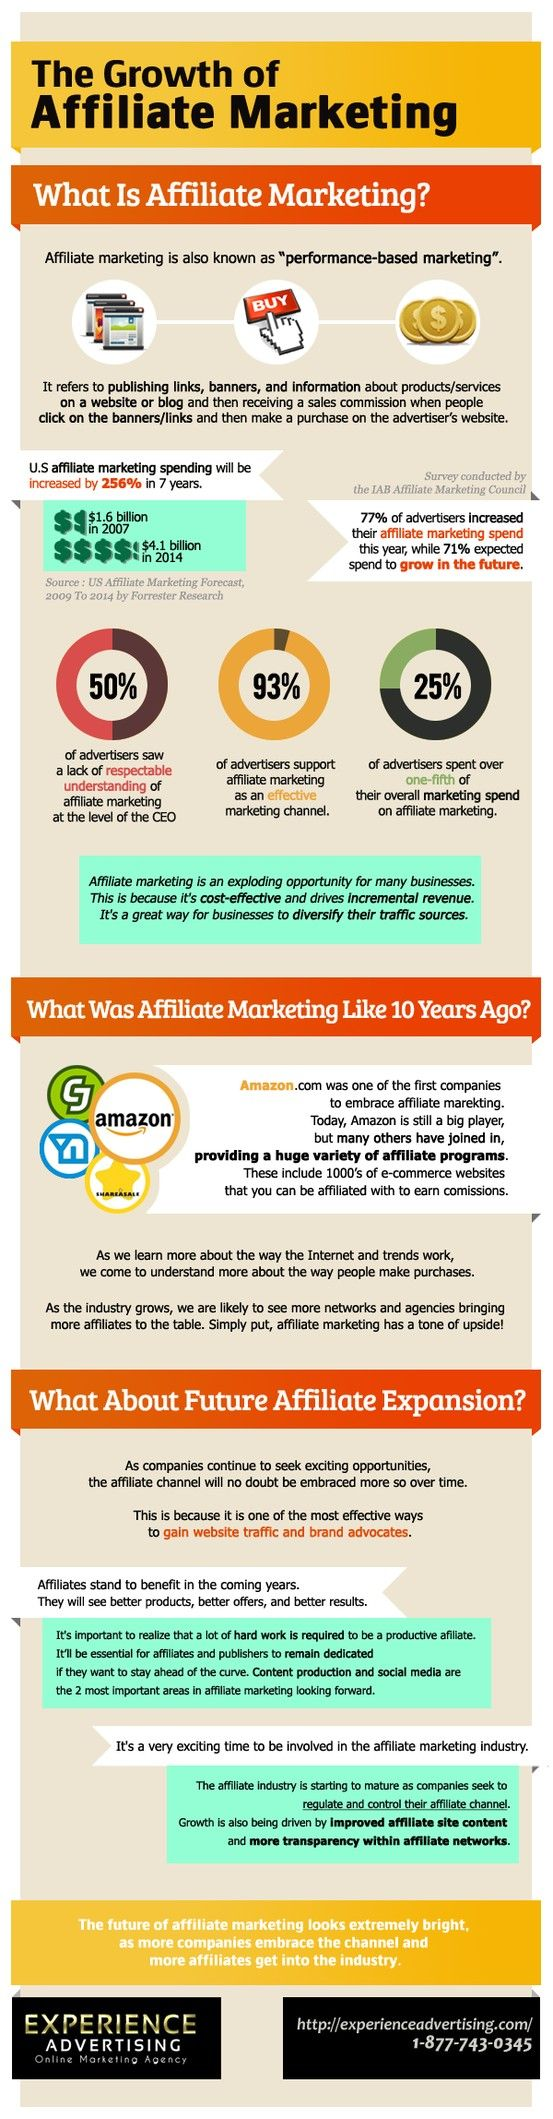 Affiliate Marketing is growing fast